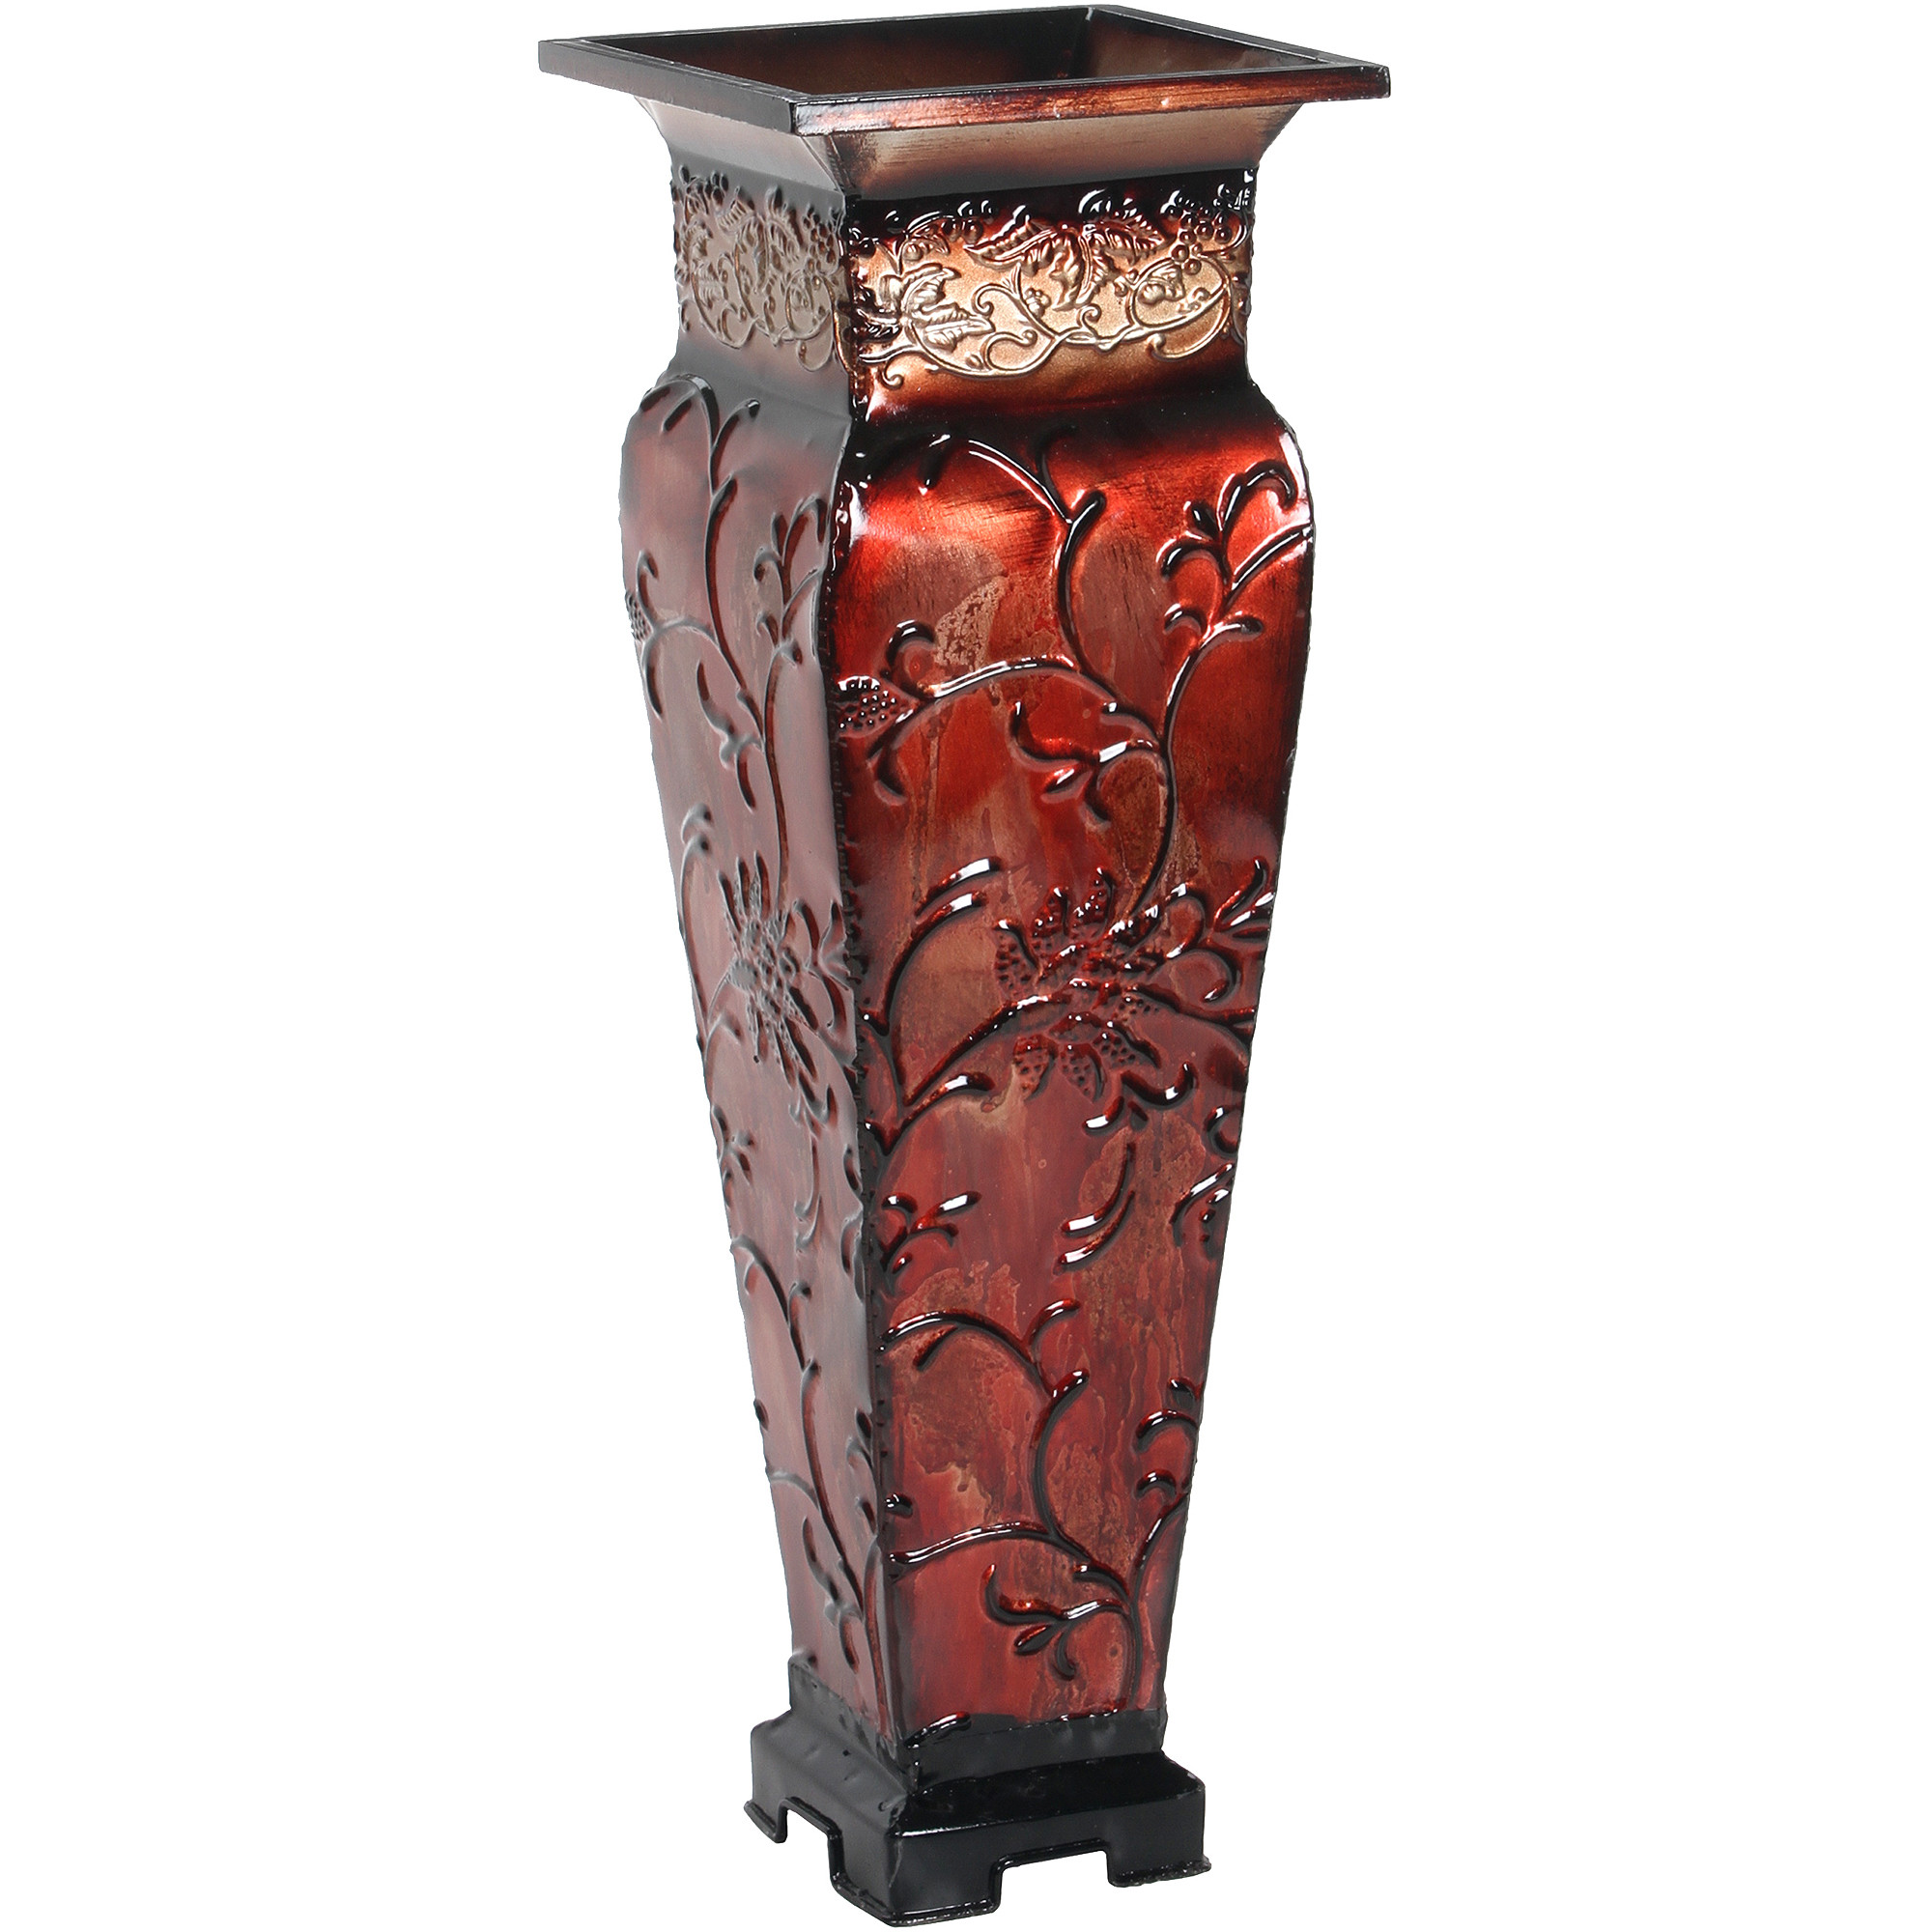 Tall Floor Vases Walmart Of Large Gold Vases for the Floor Vase and Cellar Image Avorcor Com Throughout Ideas Being Extra Large Floor Vases for Home Decor Also